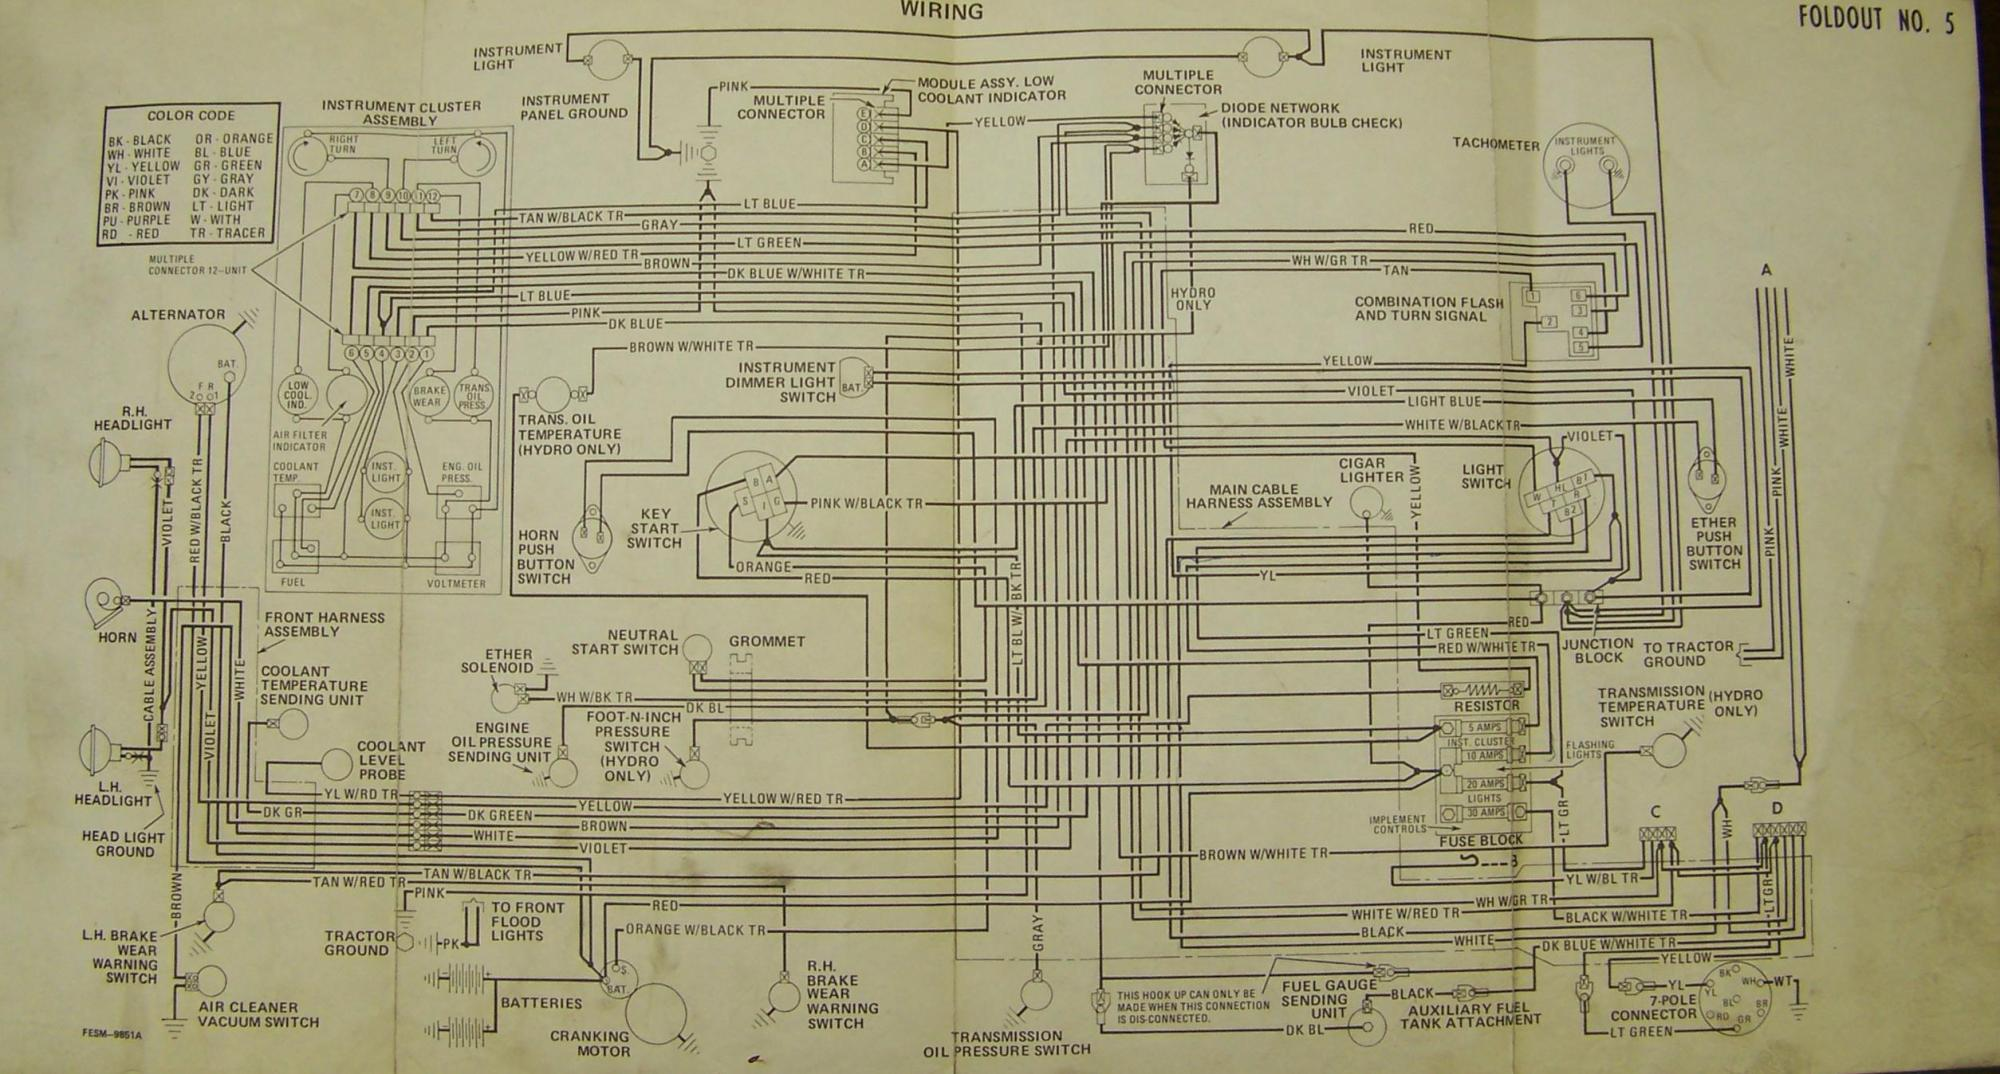 hight resolution of case ih 1586 wiring schematic wiring diagram blogs i674 wiring diagrams ih 1586 wiring diagram wiring